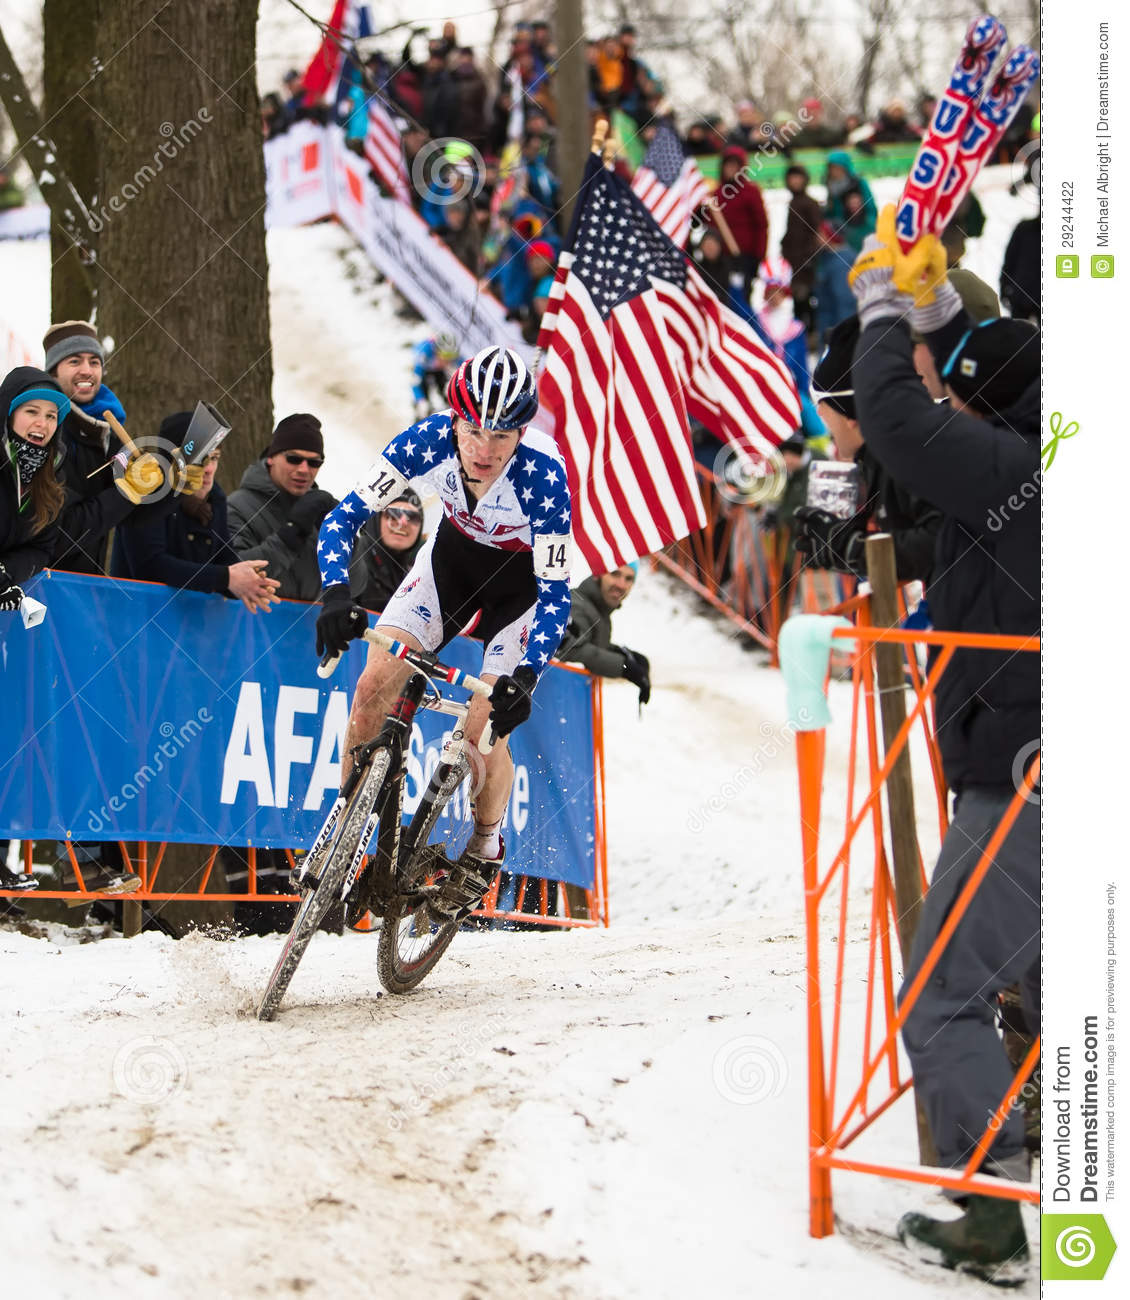 Download Campeonatos 2013 Do Mundo De Cyclocross Fotografia Editorial - Imagem de internacional, lama: 29244422